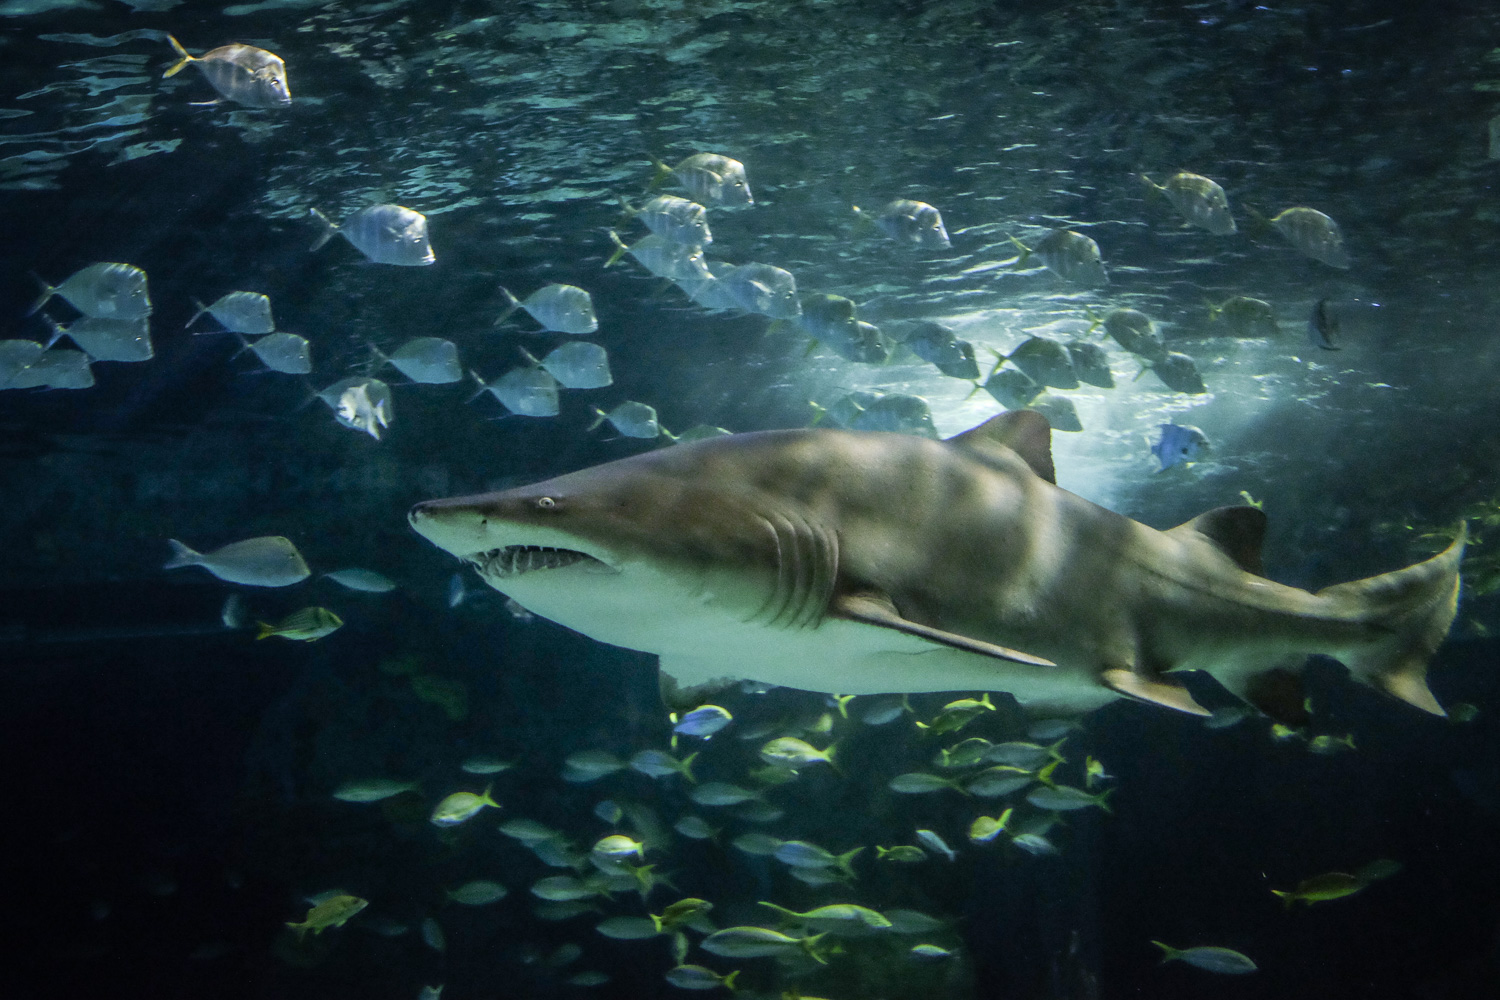 A shark with fish. How to Take Clear and Creative Photos at Aquariums